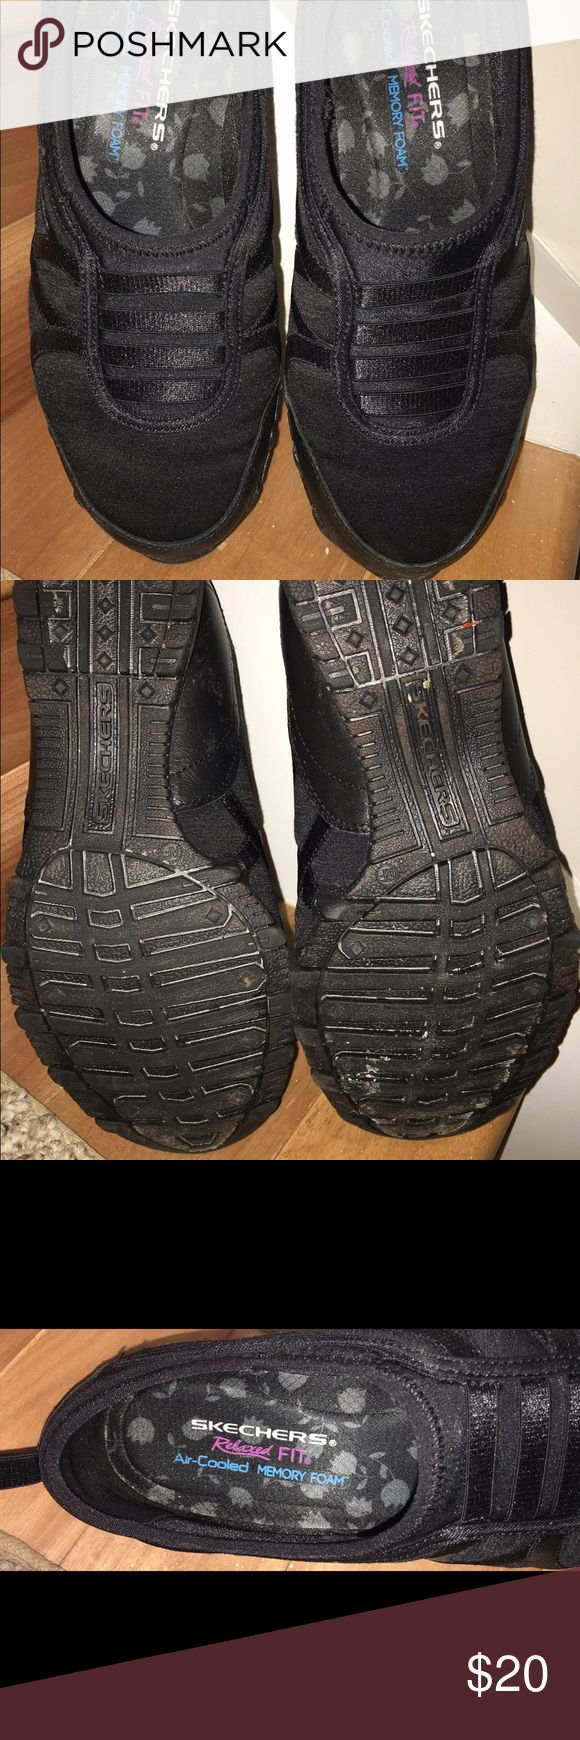 Sketchers walking shoes Women's slip on relaxed fit air cooled memory foam walking shoes. Worn twice. Like new. Skechers Shoes Sneakers